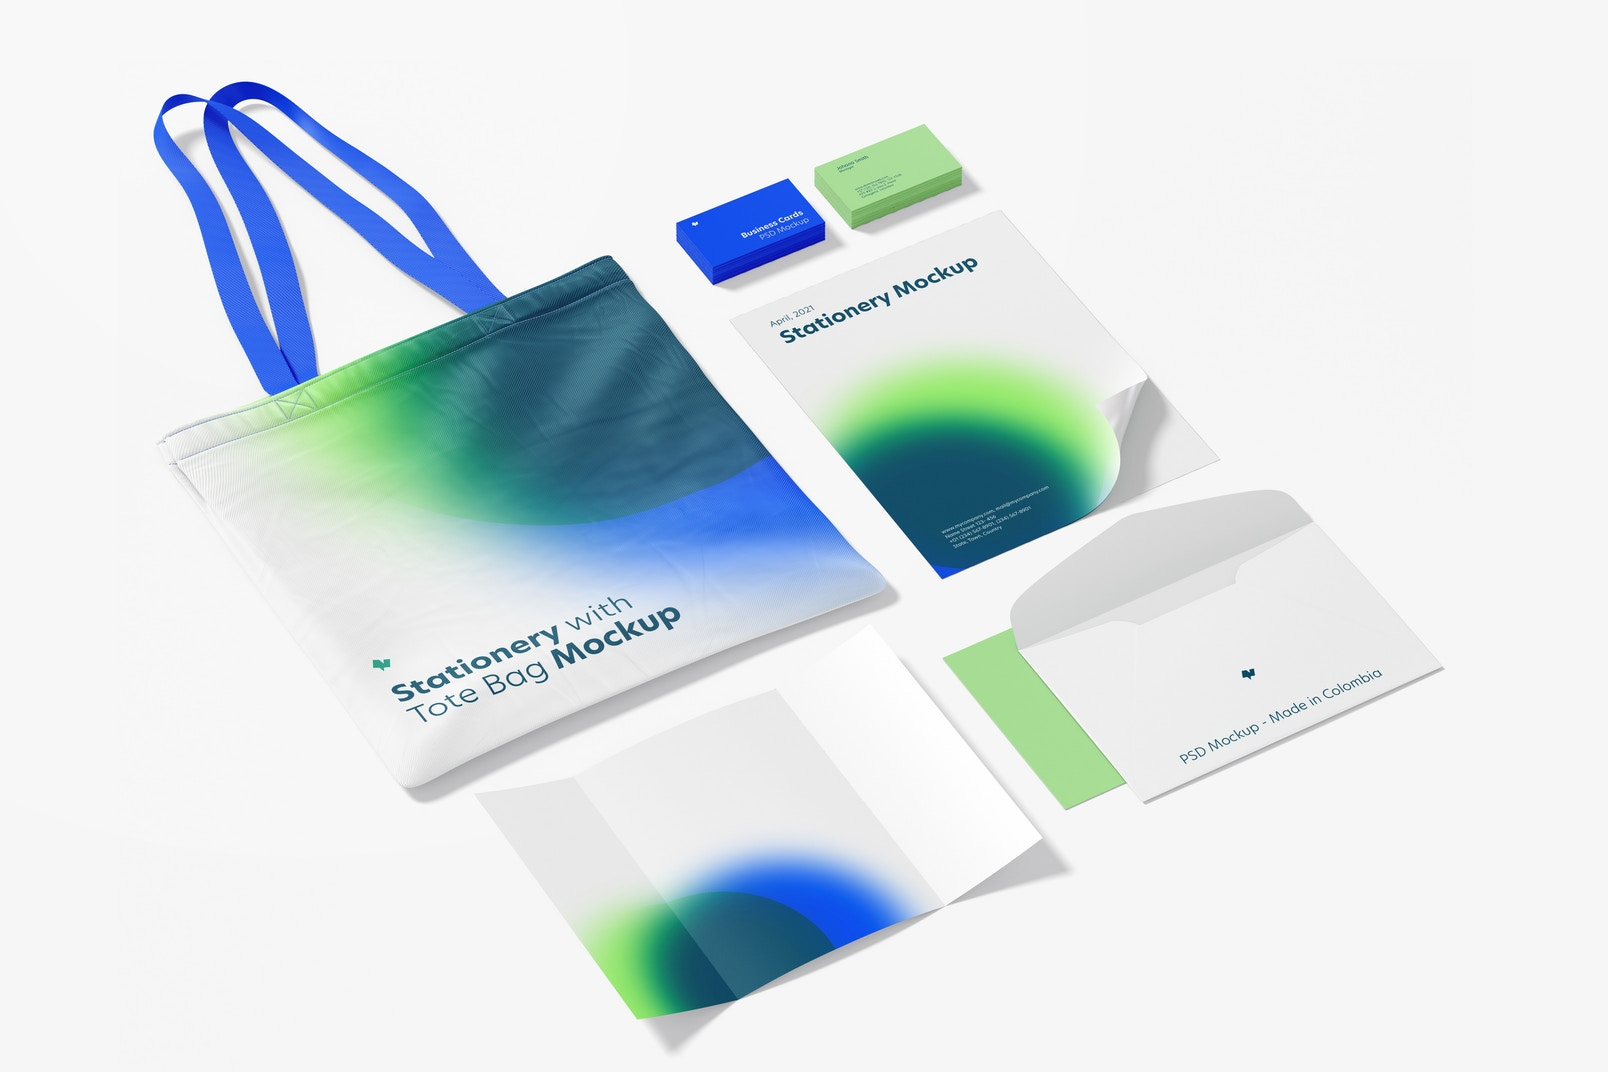 Stationery with Tote Bag Mockup 02